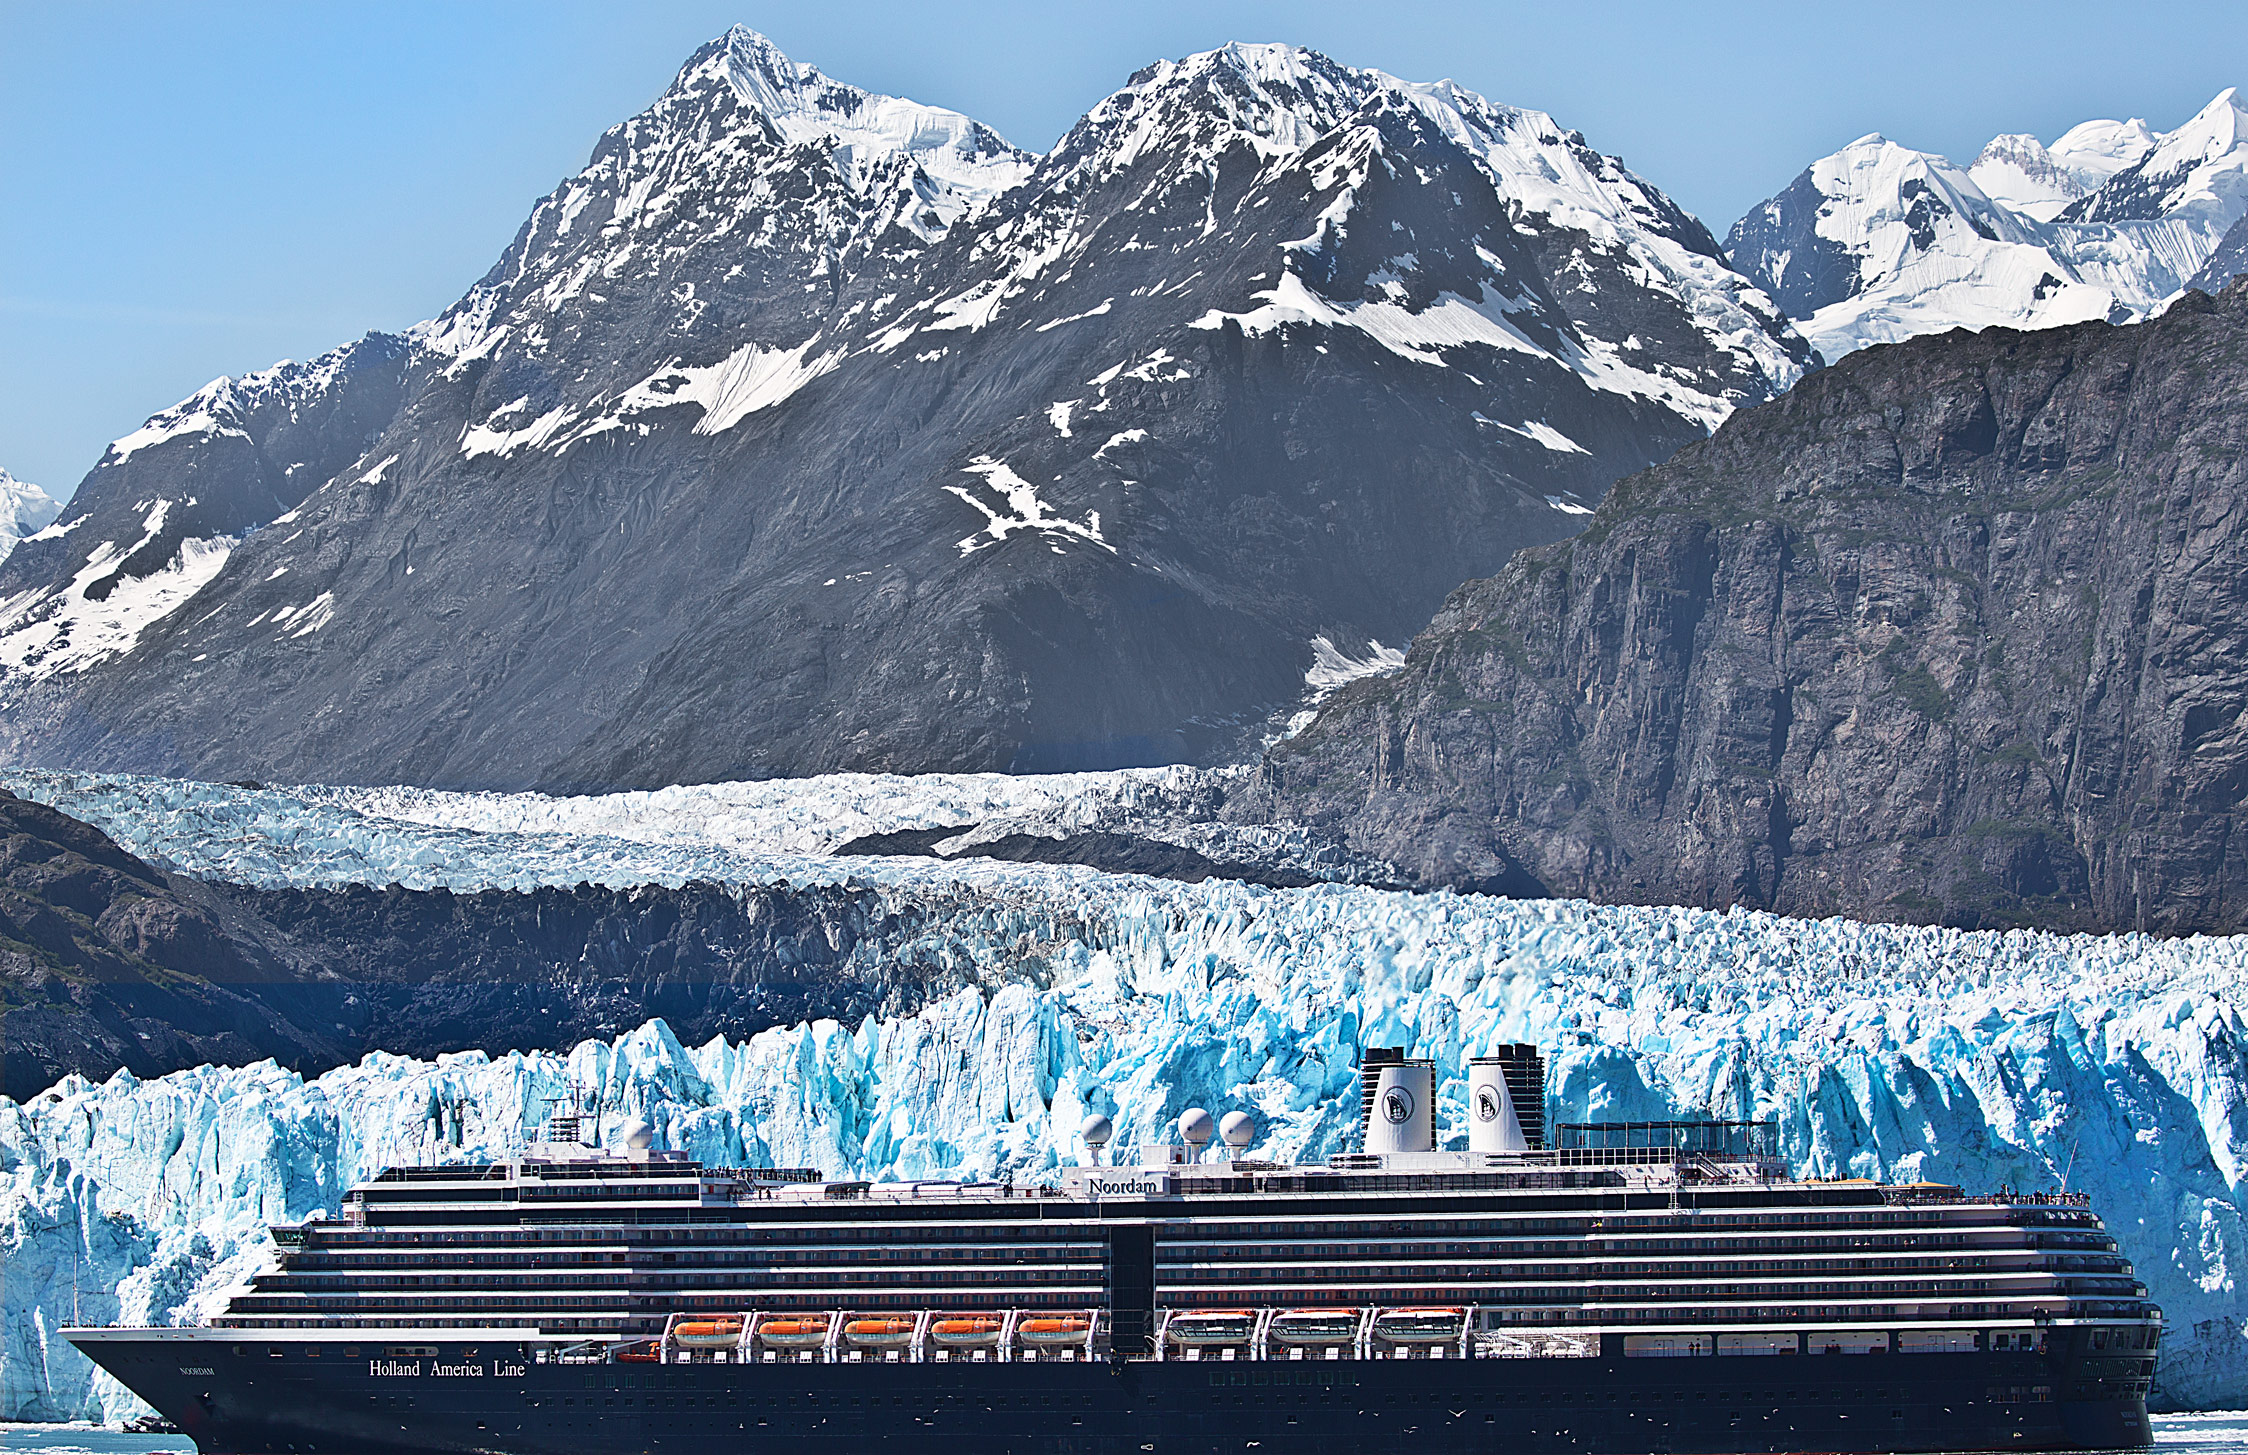 A Cruise Ship poses in front of the  Margerie Glacier